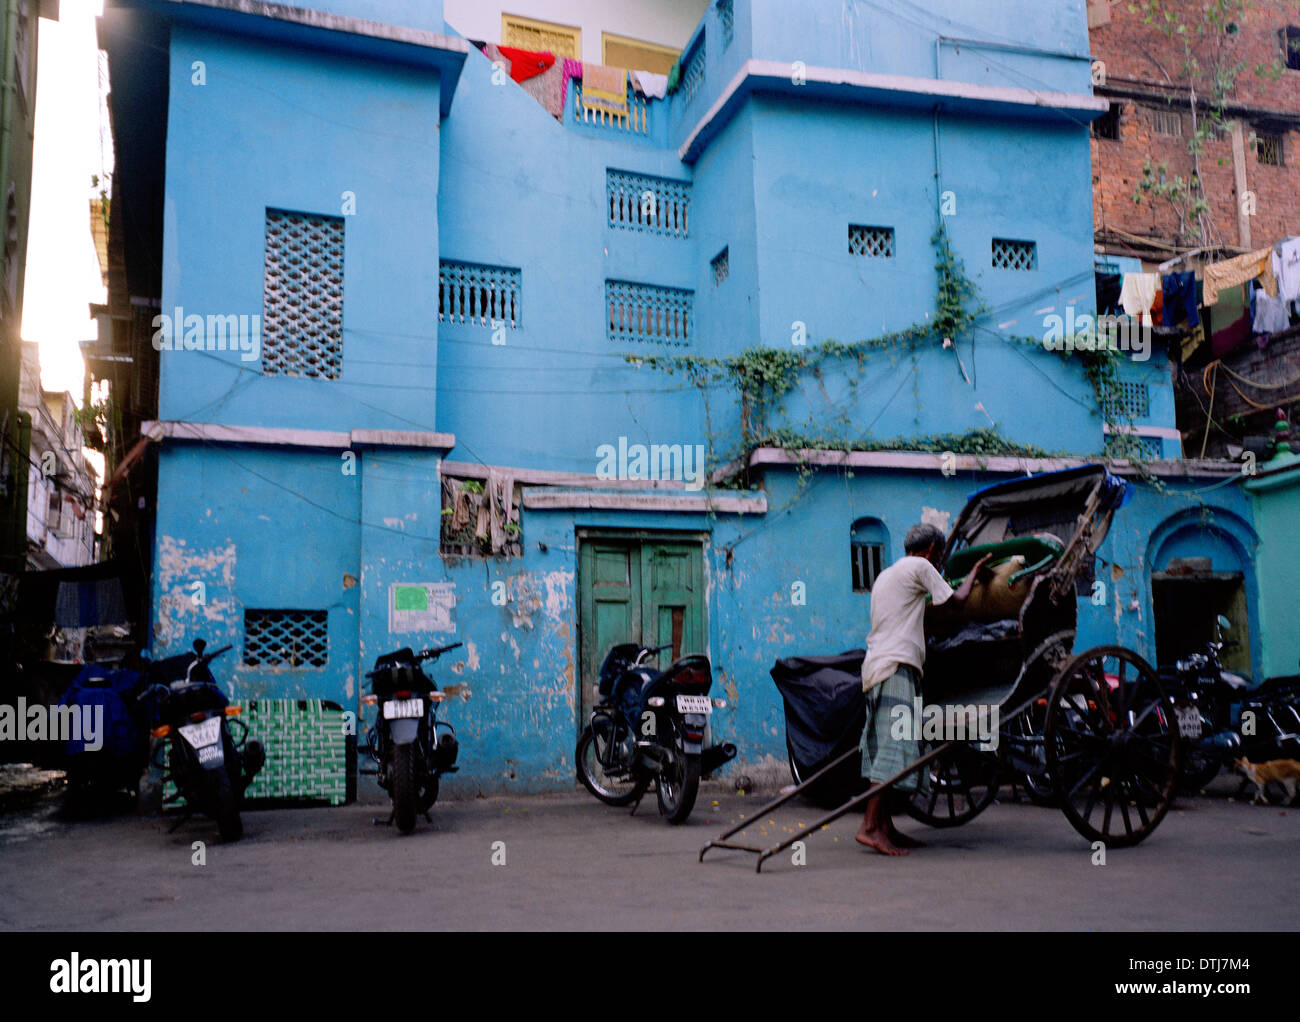 Pulled Rickshaw in the city of Kolkata Calcutta in West Bengal in India in South Asia. Cities Urban Poverty Slum People Man Life Travel Wanderlust - Stock Image